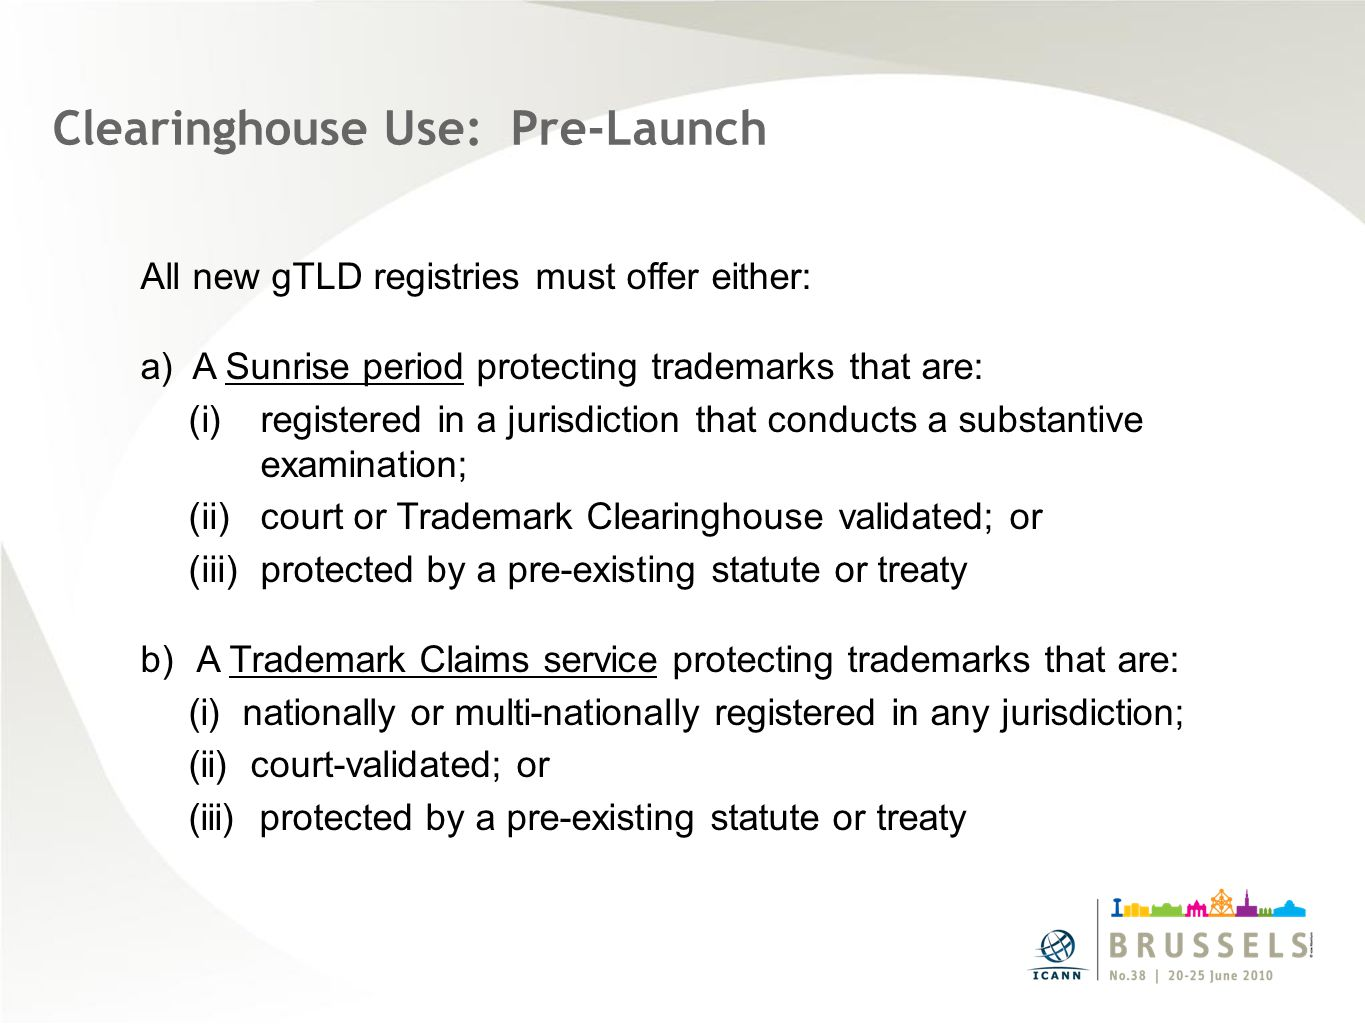 Clearinghouse Use: Pre-Launch All new gTLD registries must offer either: a) A Sunrise period protecting trademarks that are: (i)registered in a jurisdiction that conducts a substantive examination; (ii)court or Trademark Clearinghouse validated; or (iii)protected by a pre-existing statute or treaty b) A Trademark Claims service protecting trademarks that are: (i) nationally or multi-nationally registered in any jurisdiction; (ii) court-validated; or (iii) protected by a pre-existing statute or treaty